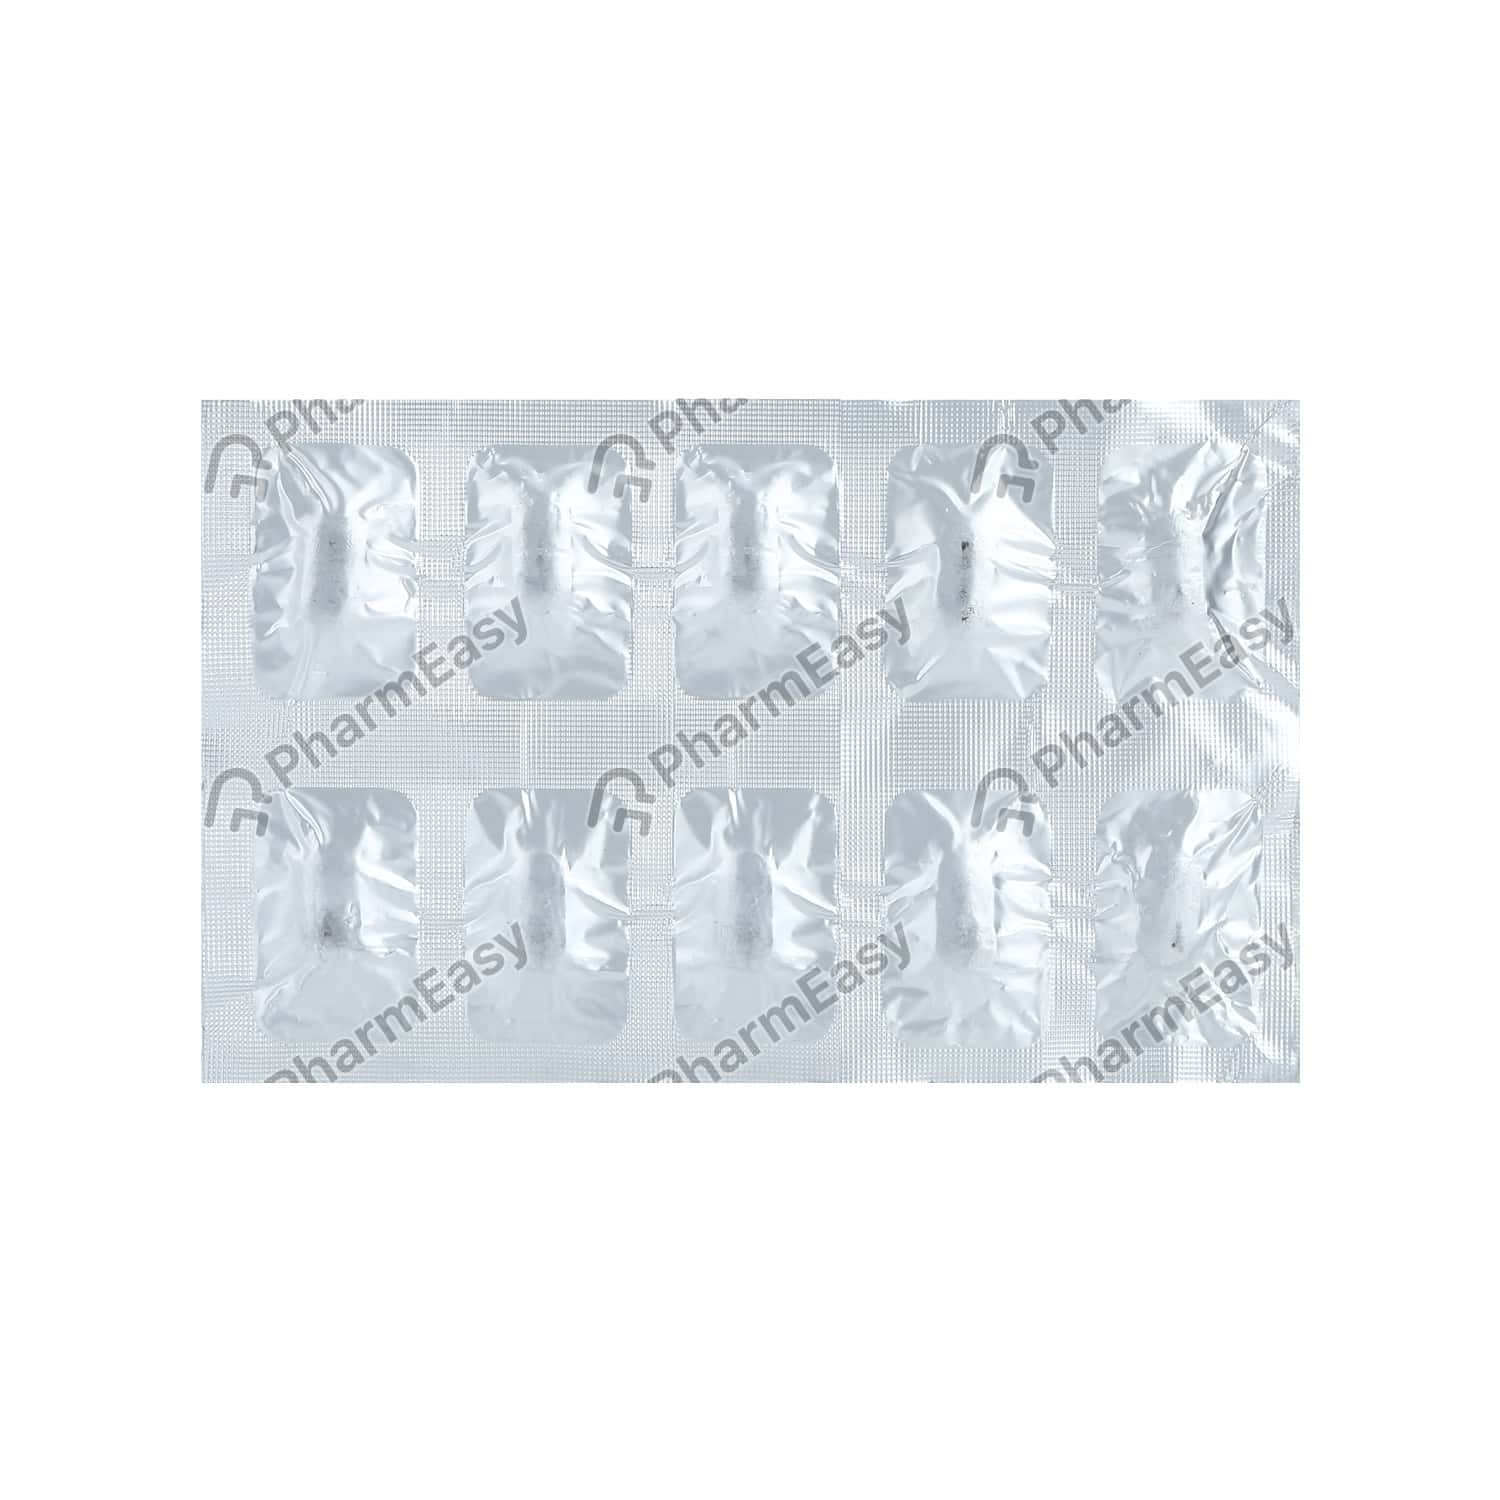 Colonise Forte Strip Of 10 Capsules